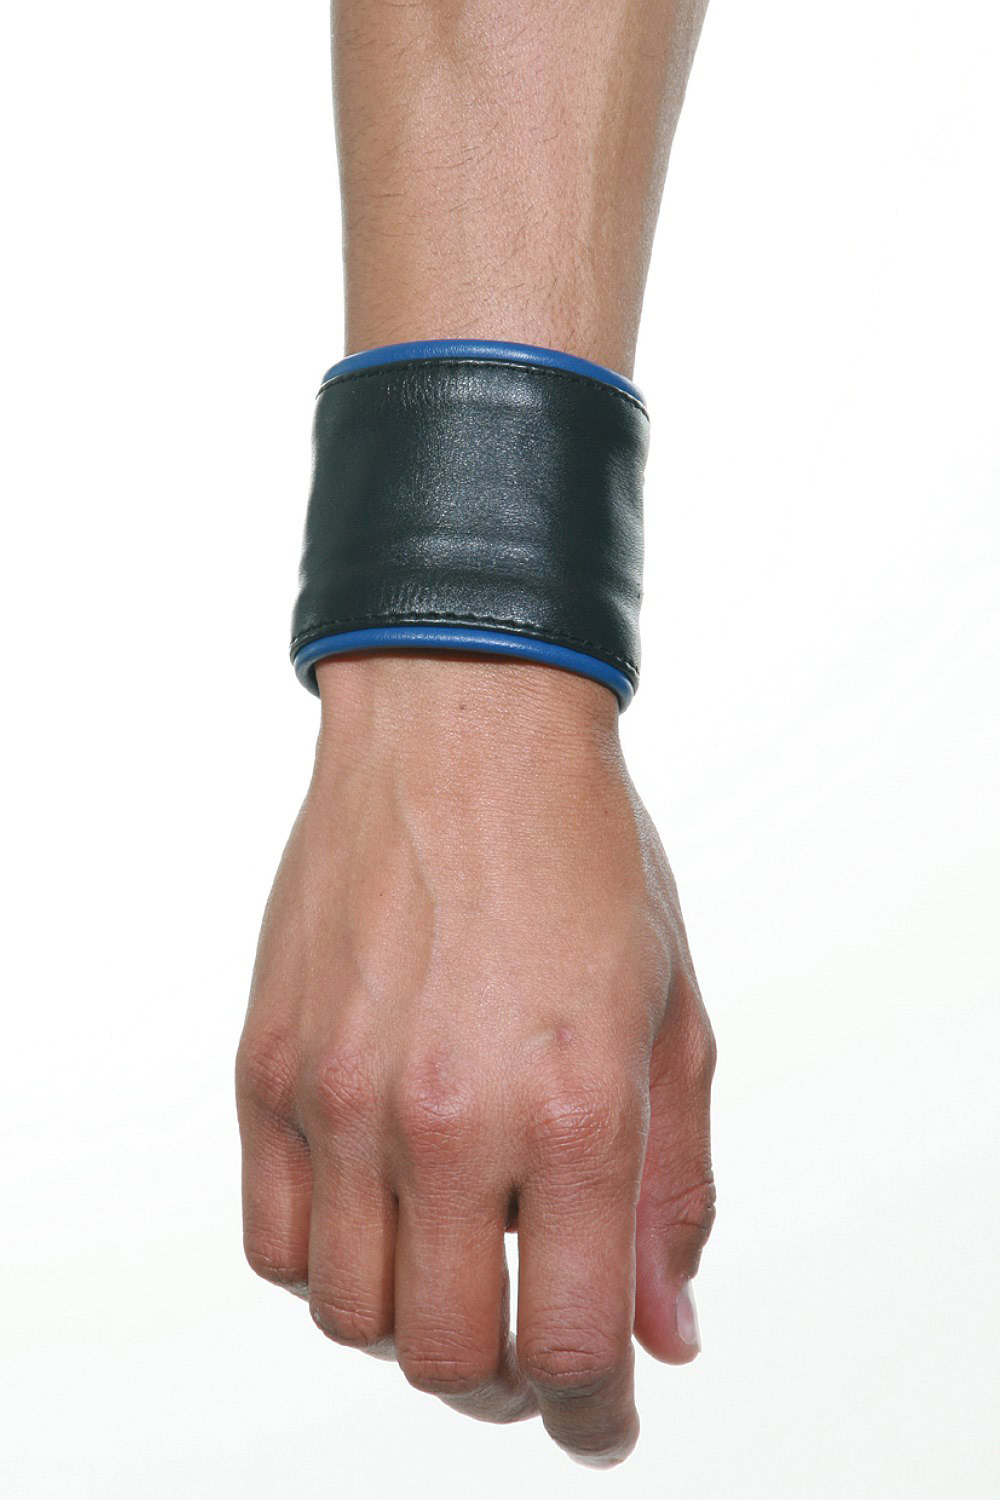 MISTER B COLT Wristband at oboy.com